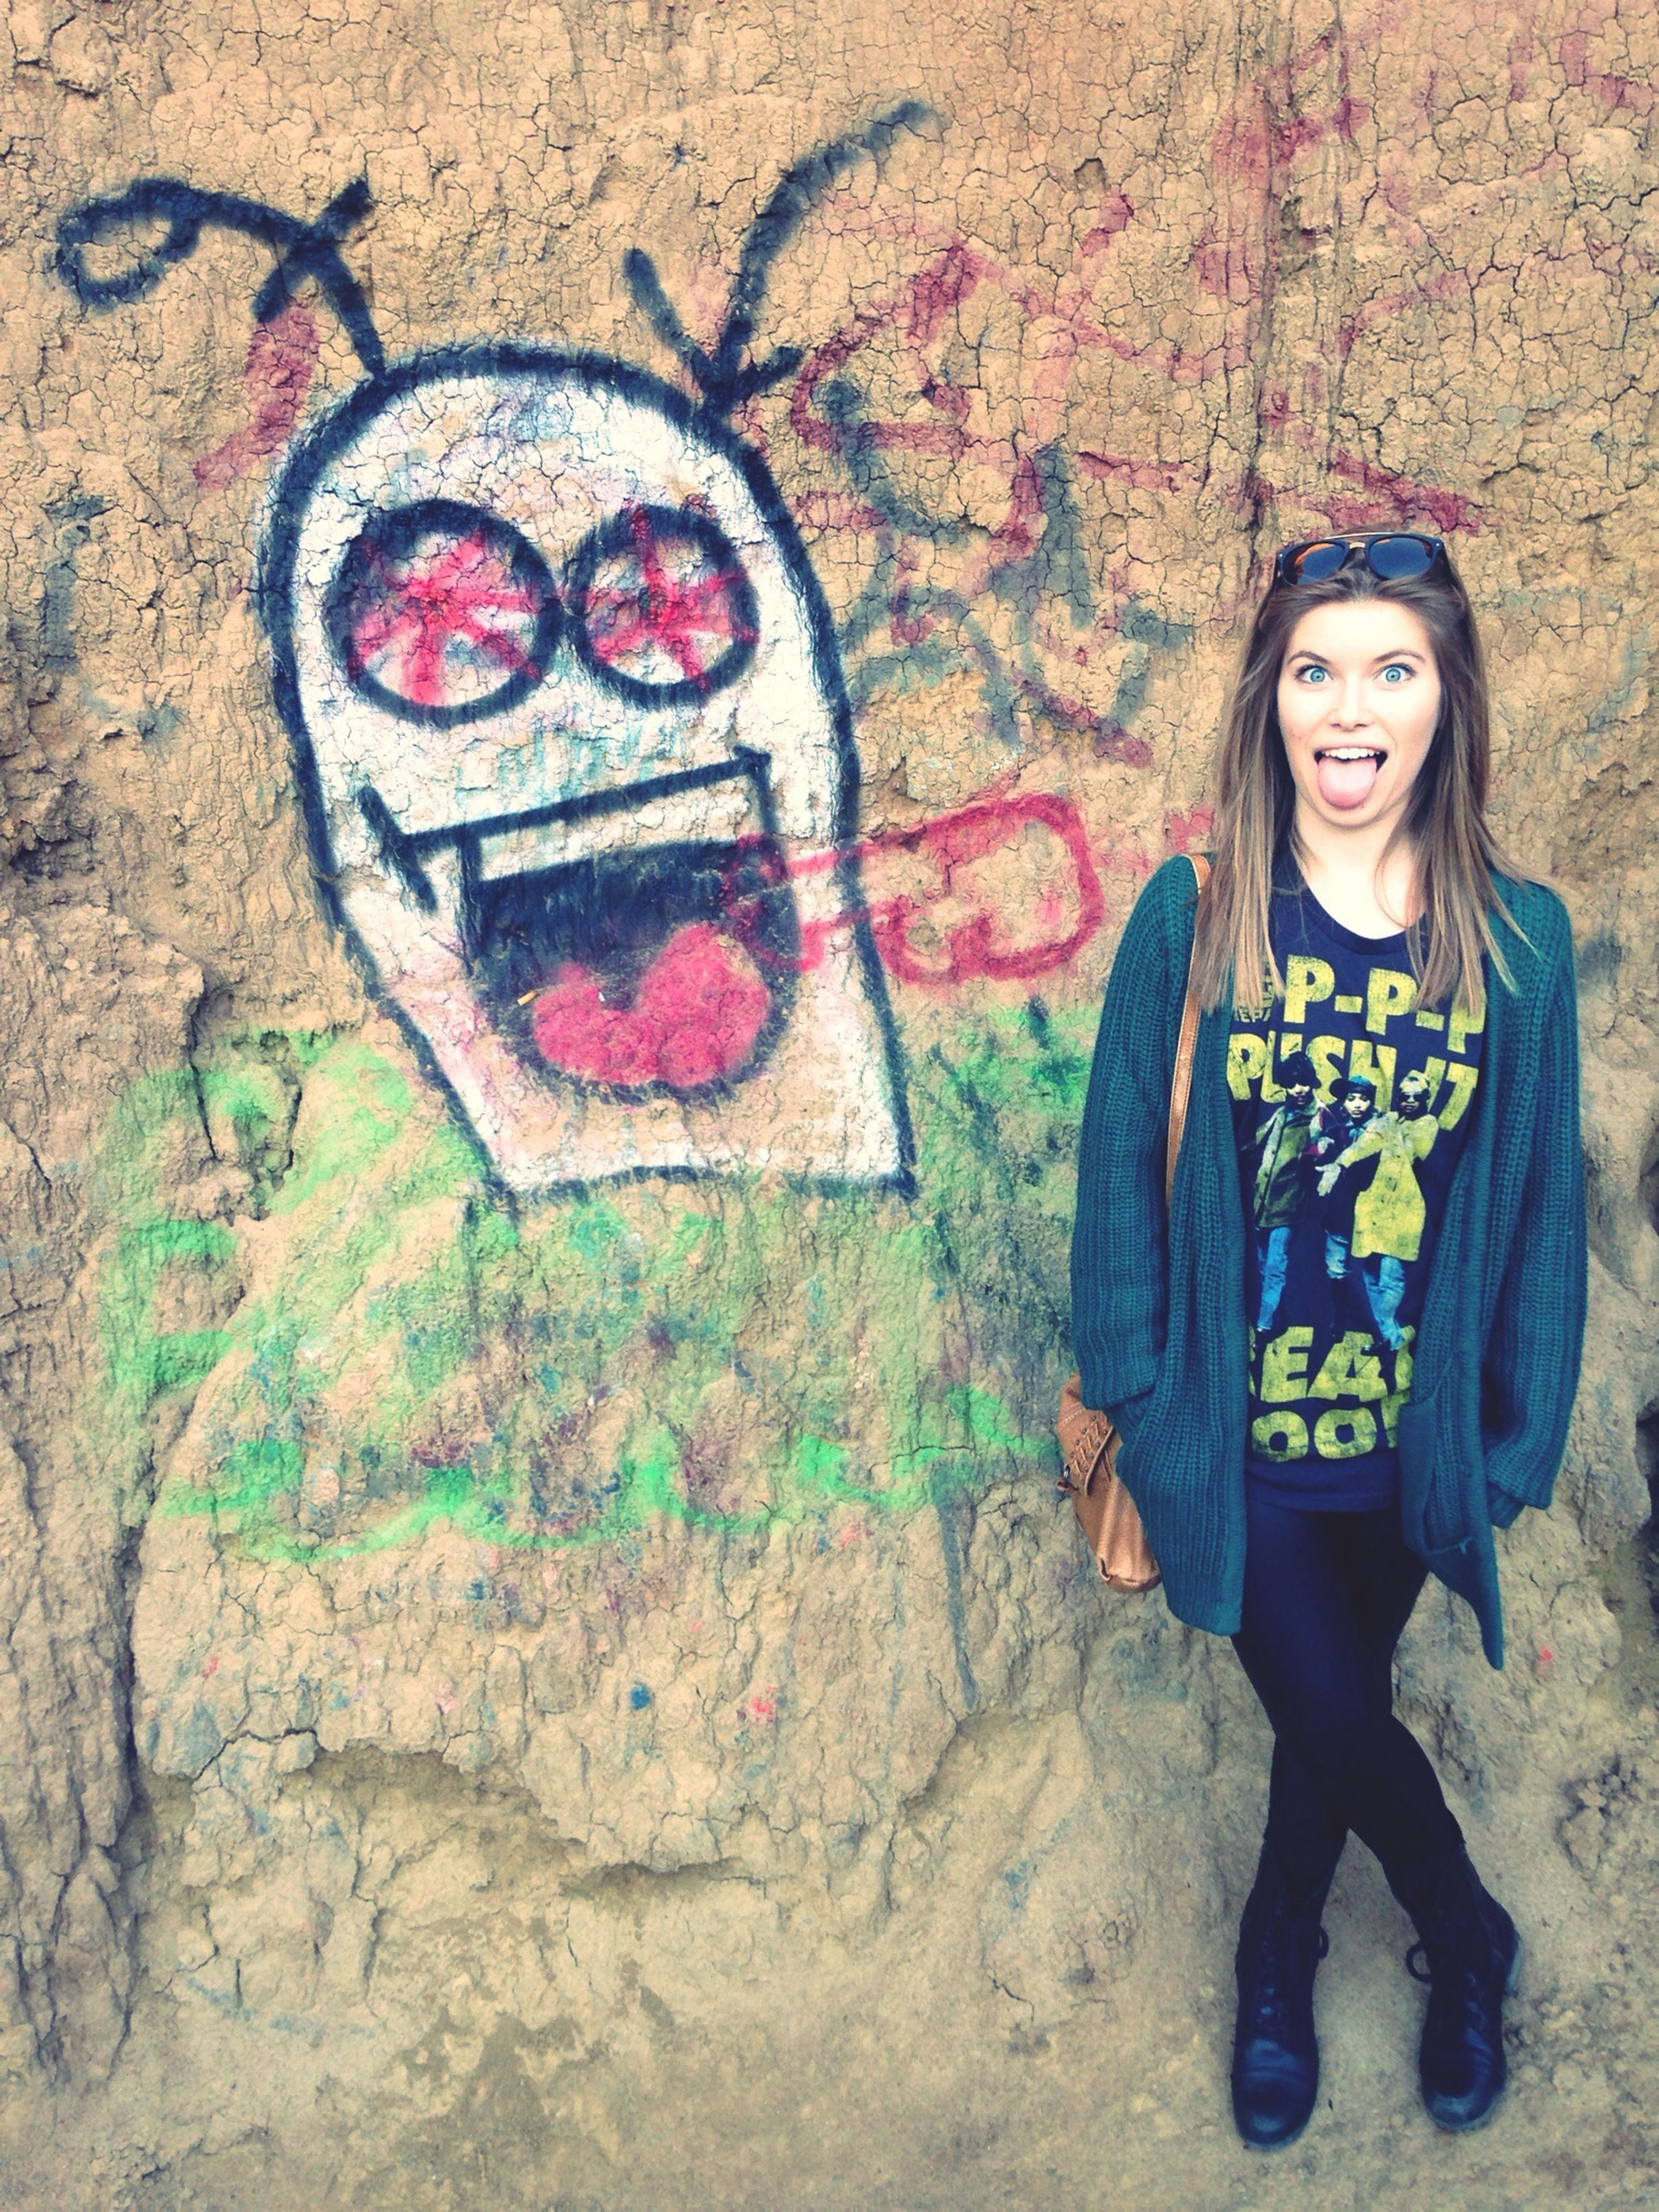 lifestyles, person, casual clothing, leisure activity, young adult, wall - building feature, standing, young women, full length, portrait, front view, looking at camera, graffiti, smiling, happiness, three quarter length, day, outdoors